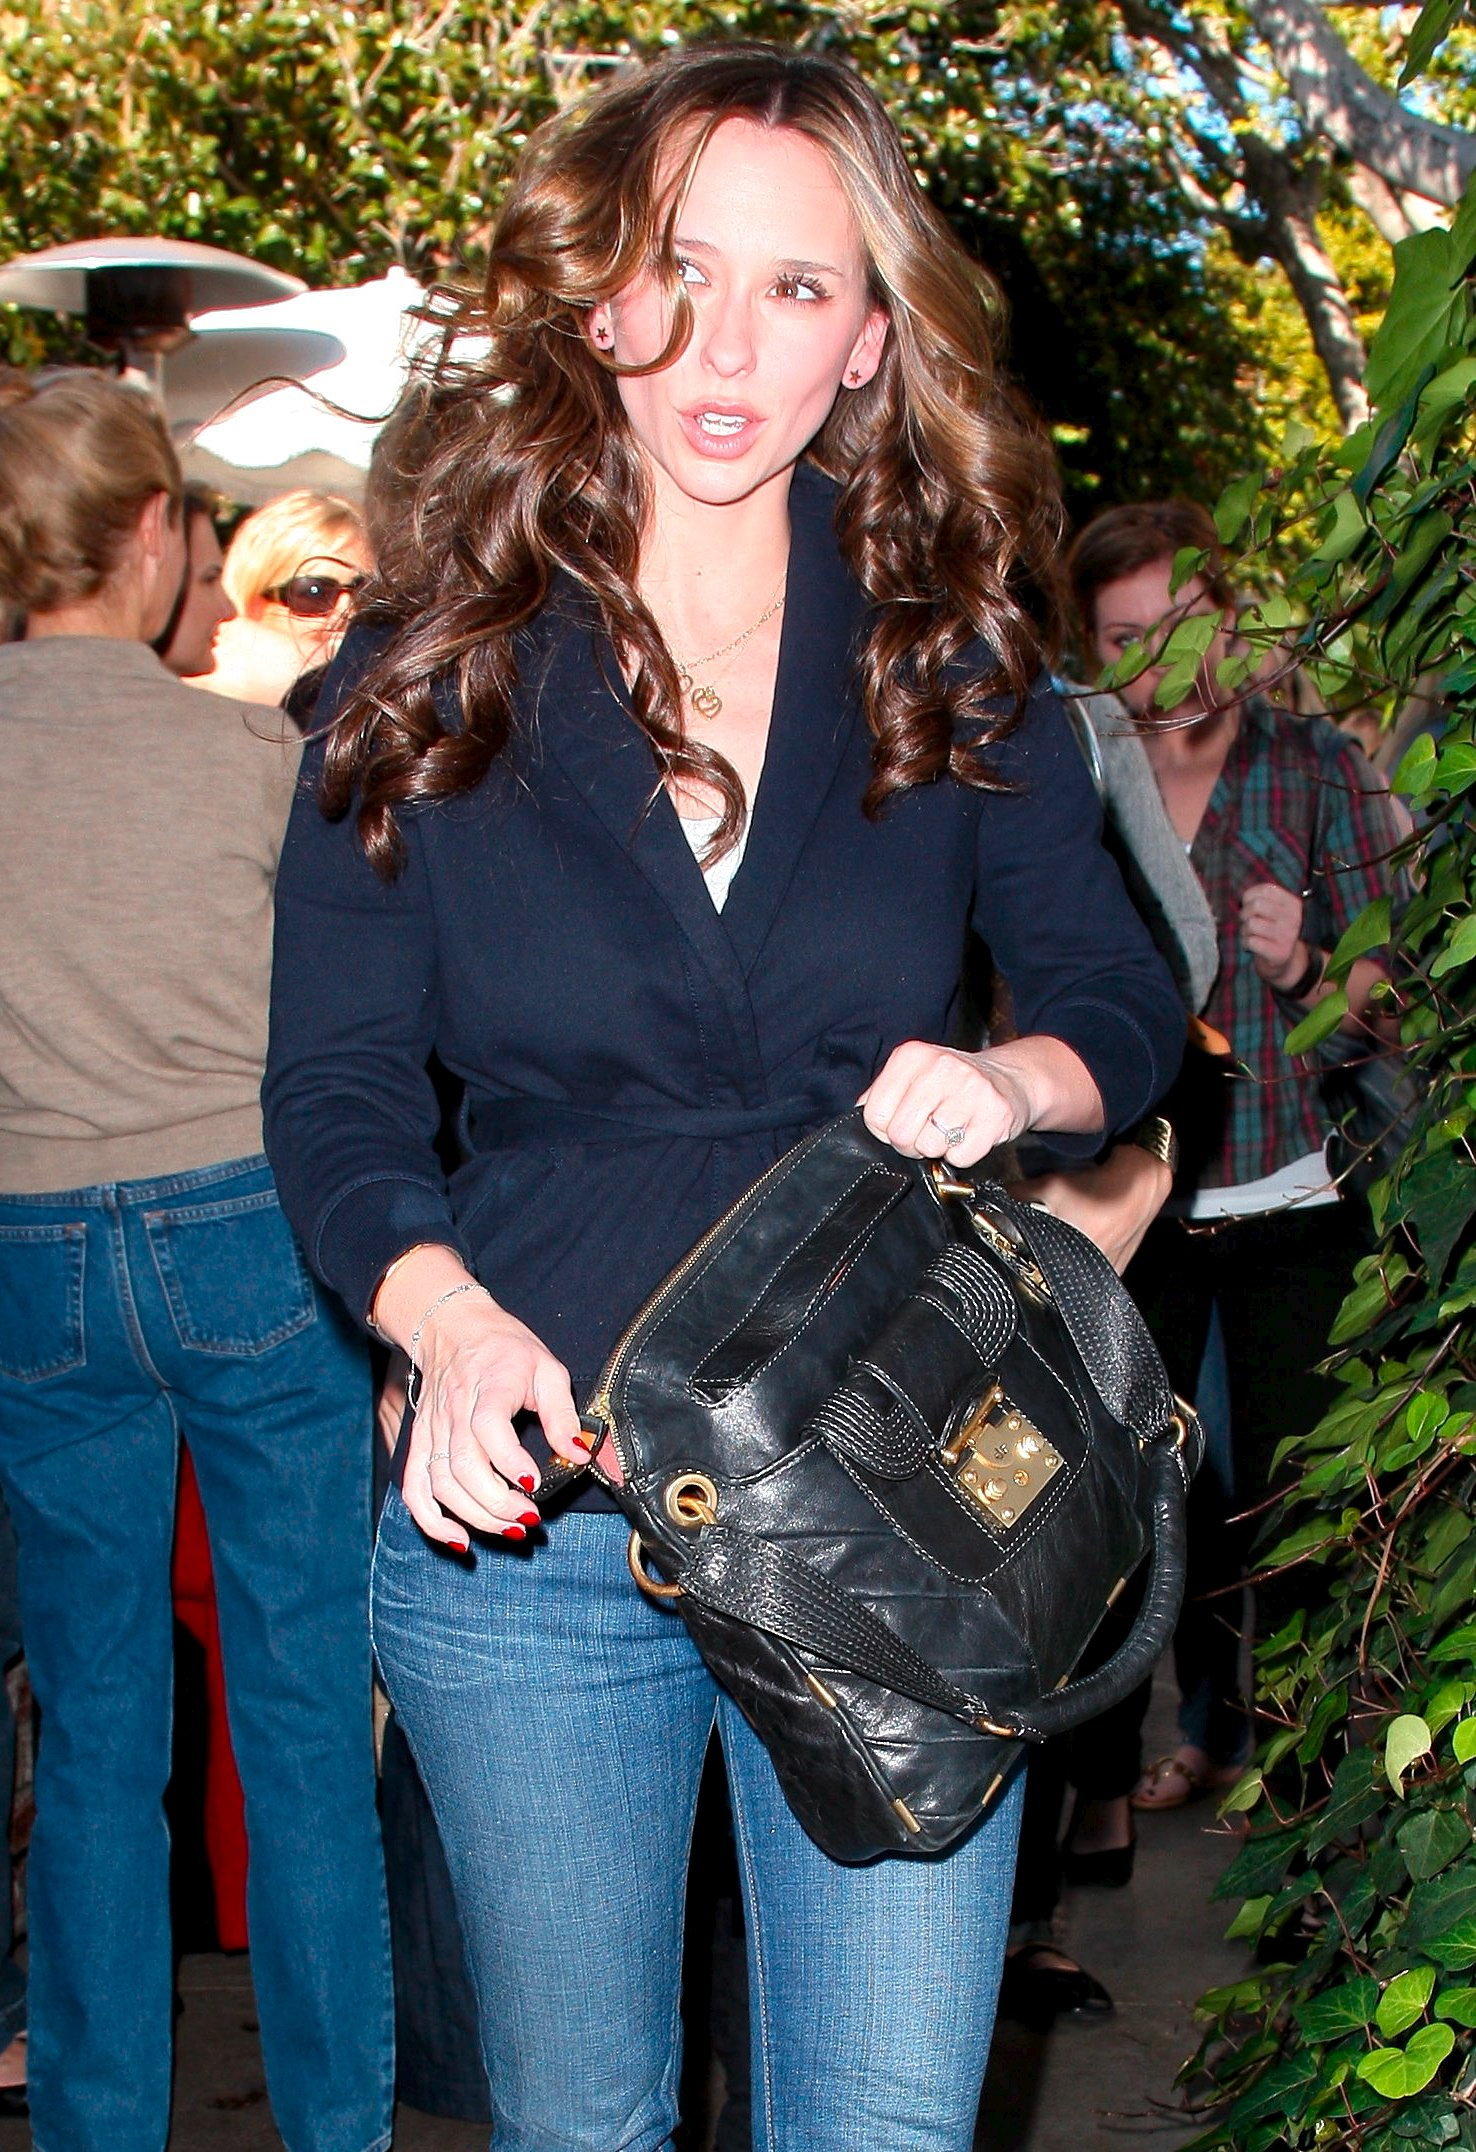 18542_Jennifer_Love_Hewitt_2008-12-29_-_shopping_on_Robertson_Blvd_235_122_993lo.JPG